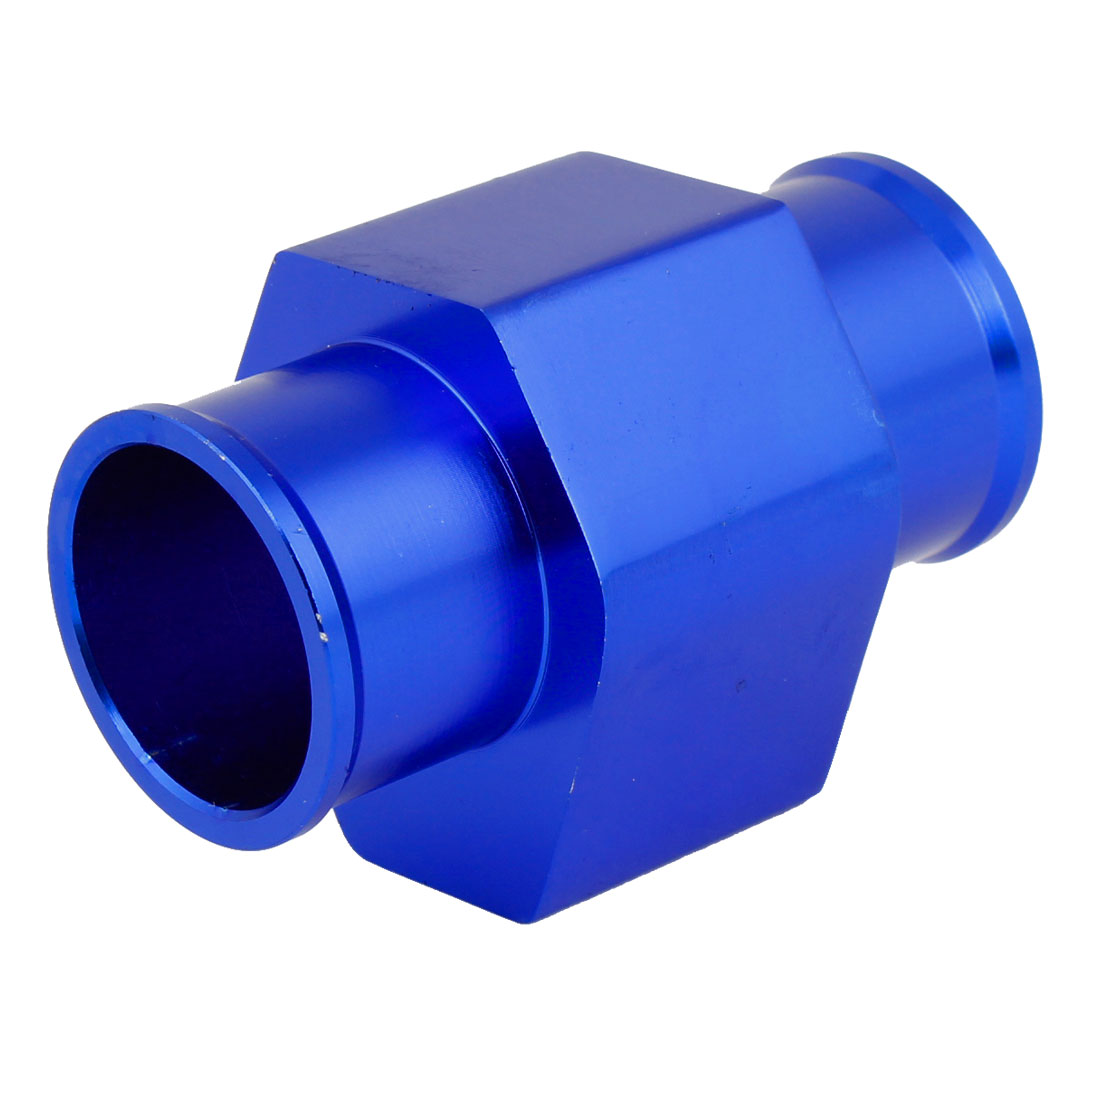 Water Temperature Gauge Sensor Radiator Hose Adapter Joint Pipe Blue 32mm